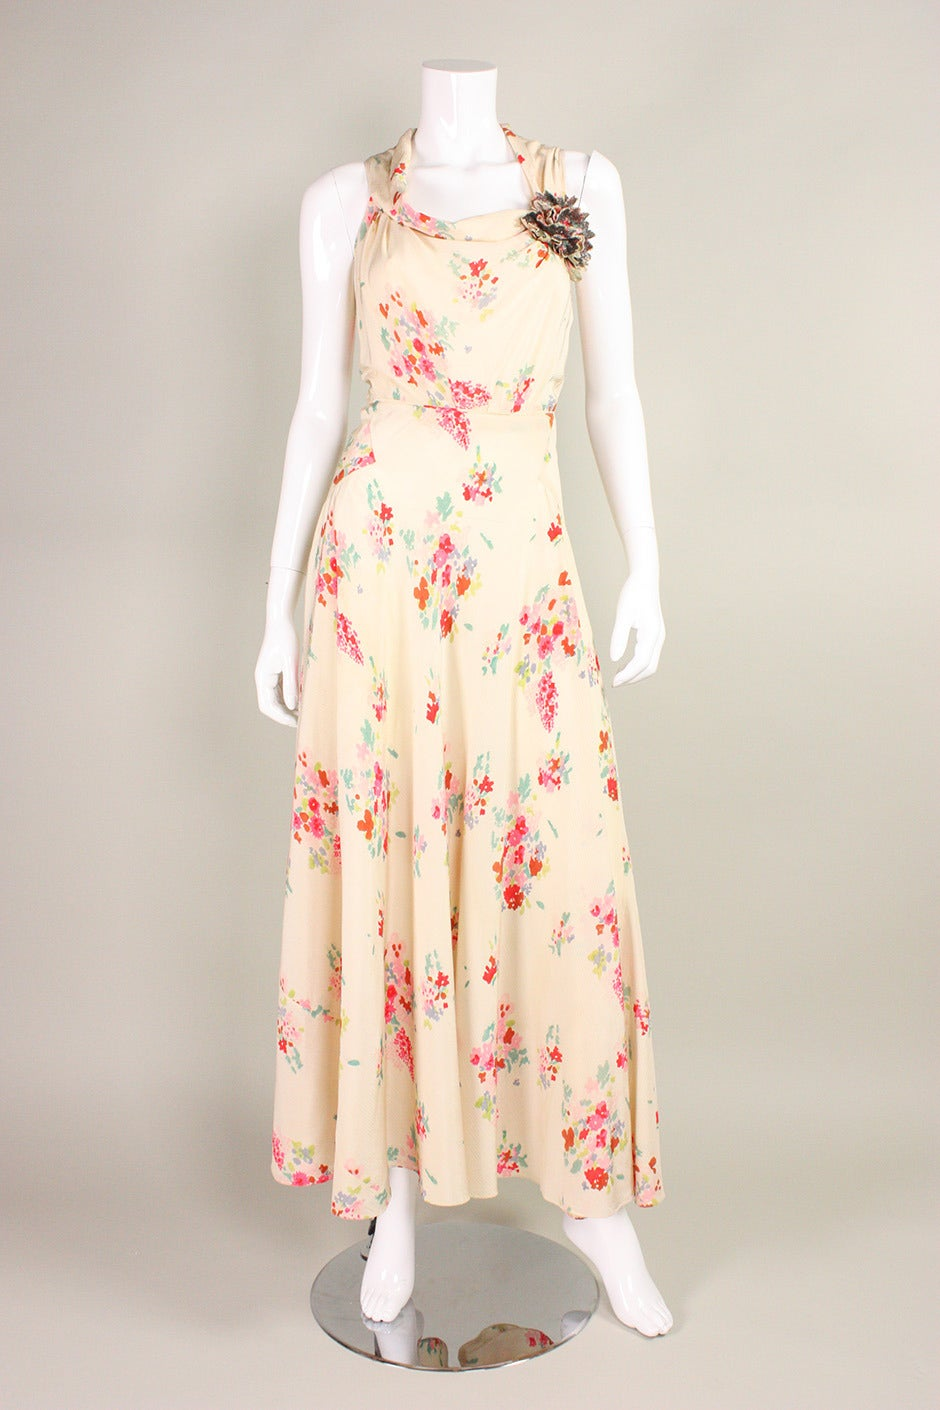 """Vintage gown dates to the 1930's and retailed at """"Stefan Kozak Inc."""" in New York City.  It is made of textured silk crepe with a multicolor floral print. It is cut on the bias, which creates a very flattering shape. Front and back cowl"""